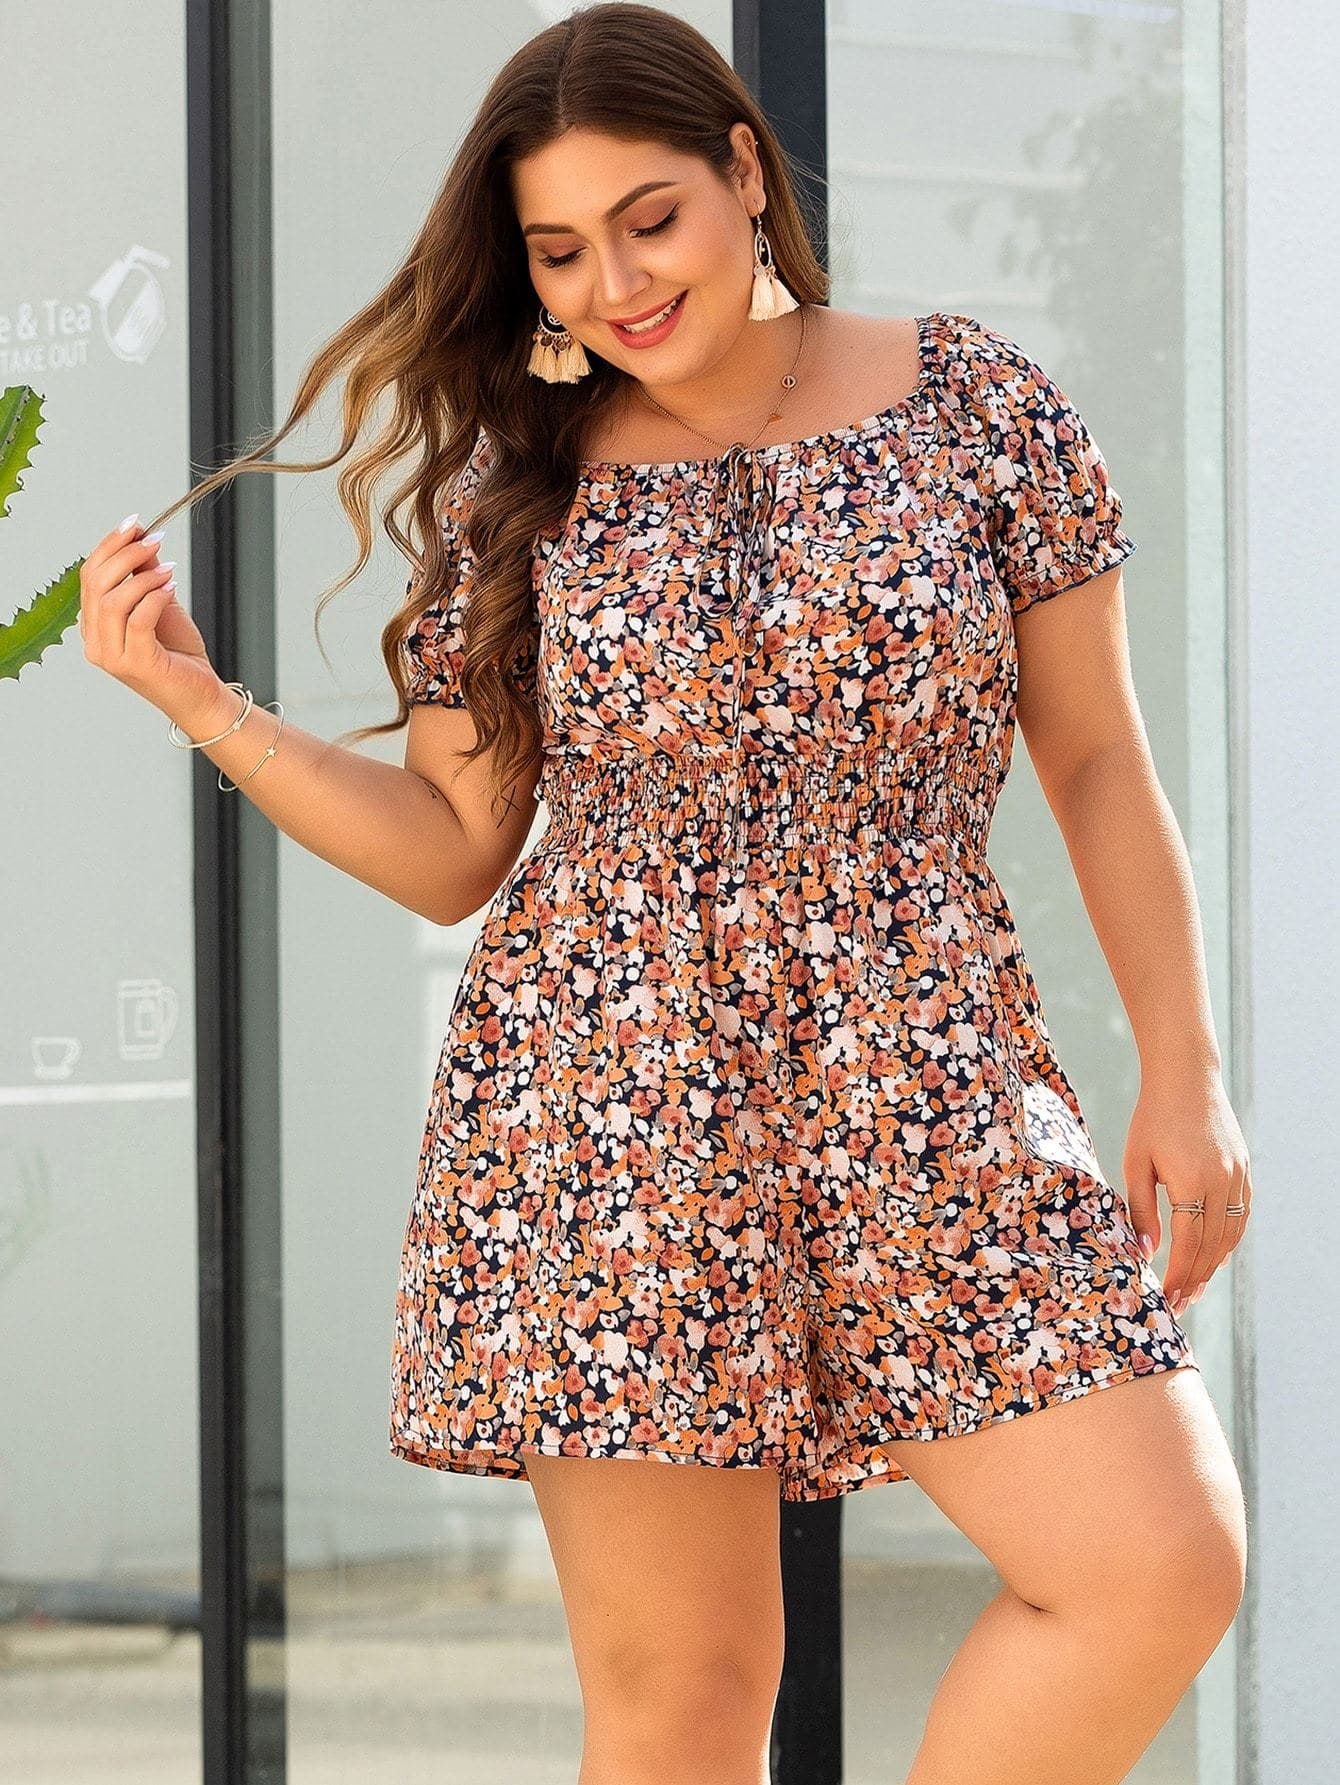 Plus Square Neck Shirred Floral Print Romper - FLJ CORPORATIONS